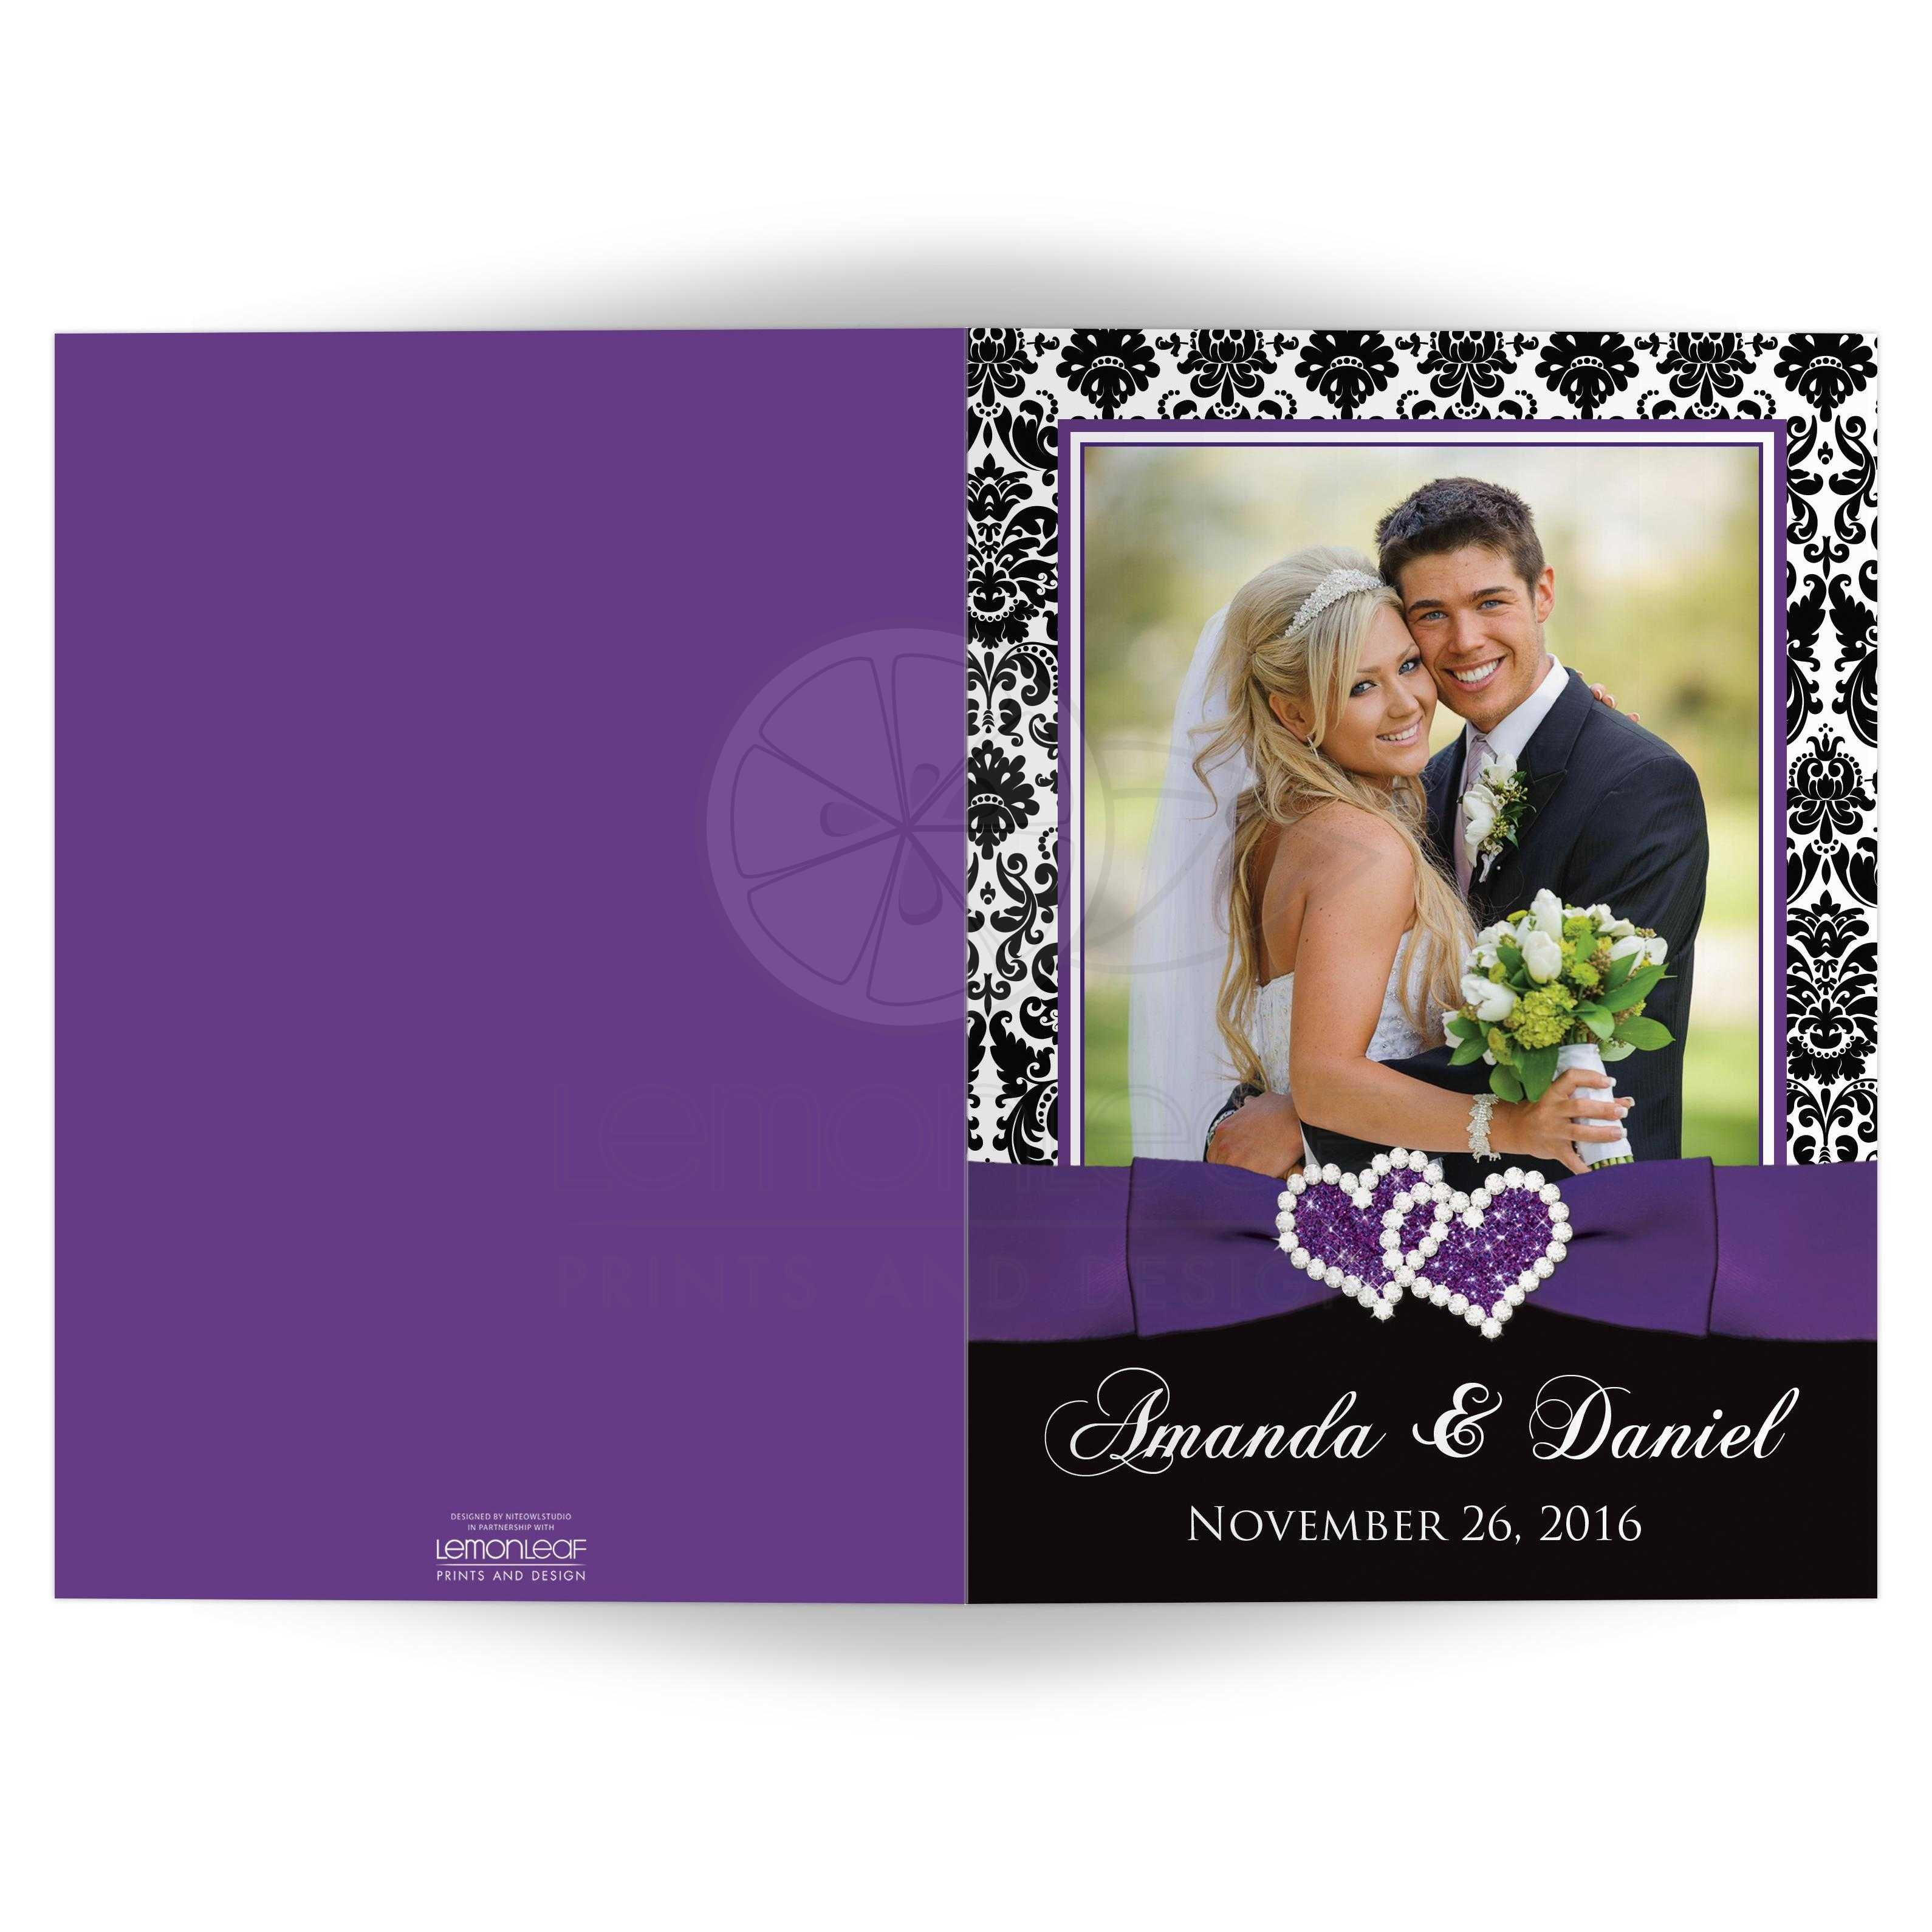 Great Purple Black And White Damask Pattern Photo Templates Wedding Thank You Card With